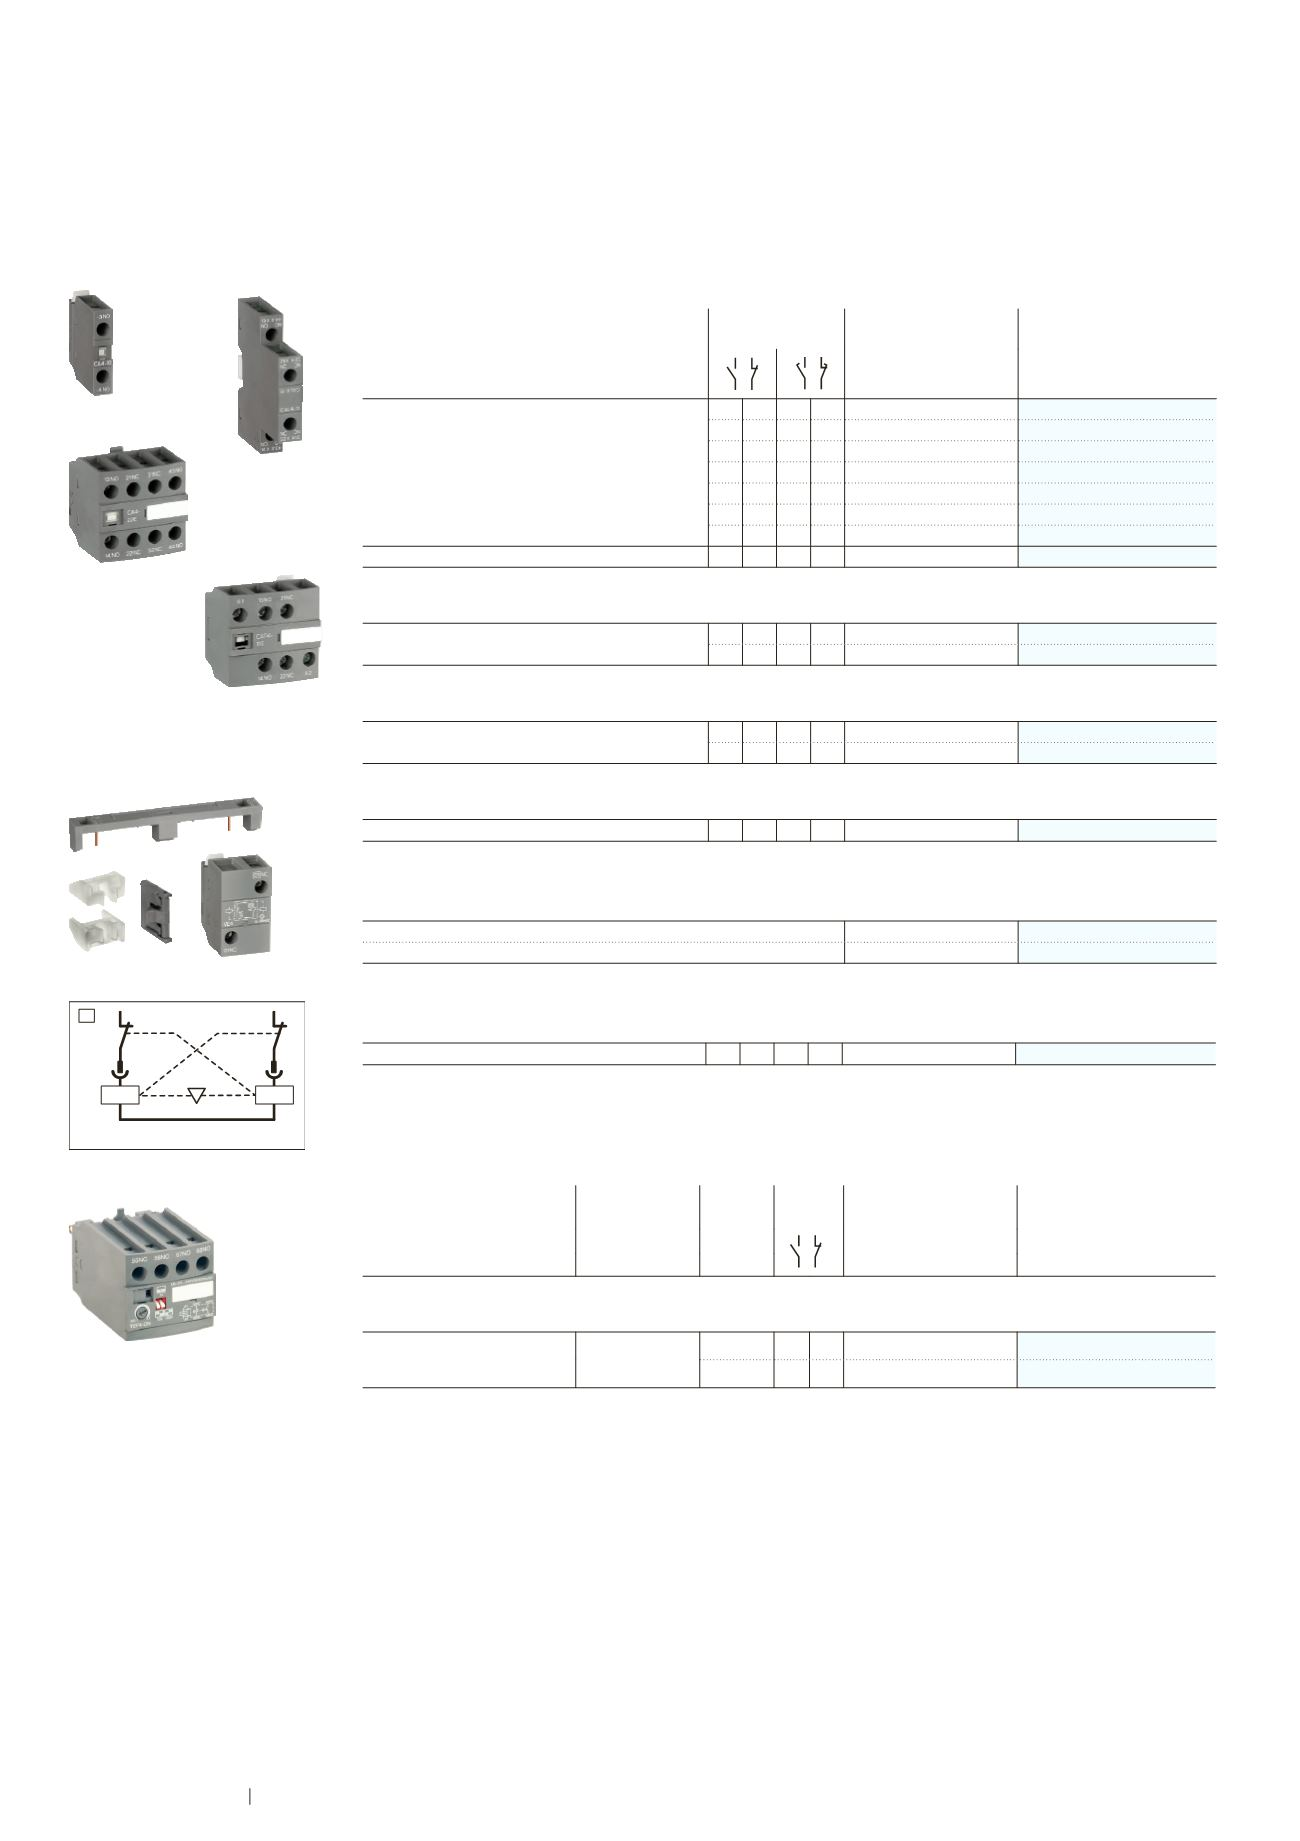 abb af09 contactor wiring diagram wiring library30 block contactors 0115 abb low voltage af09